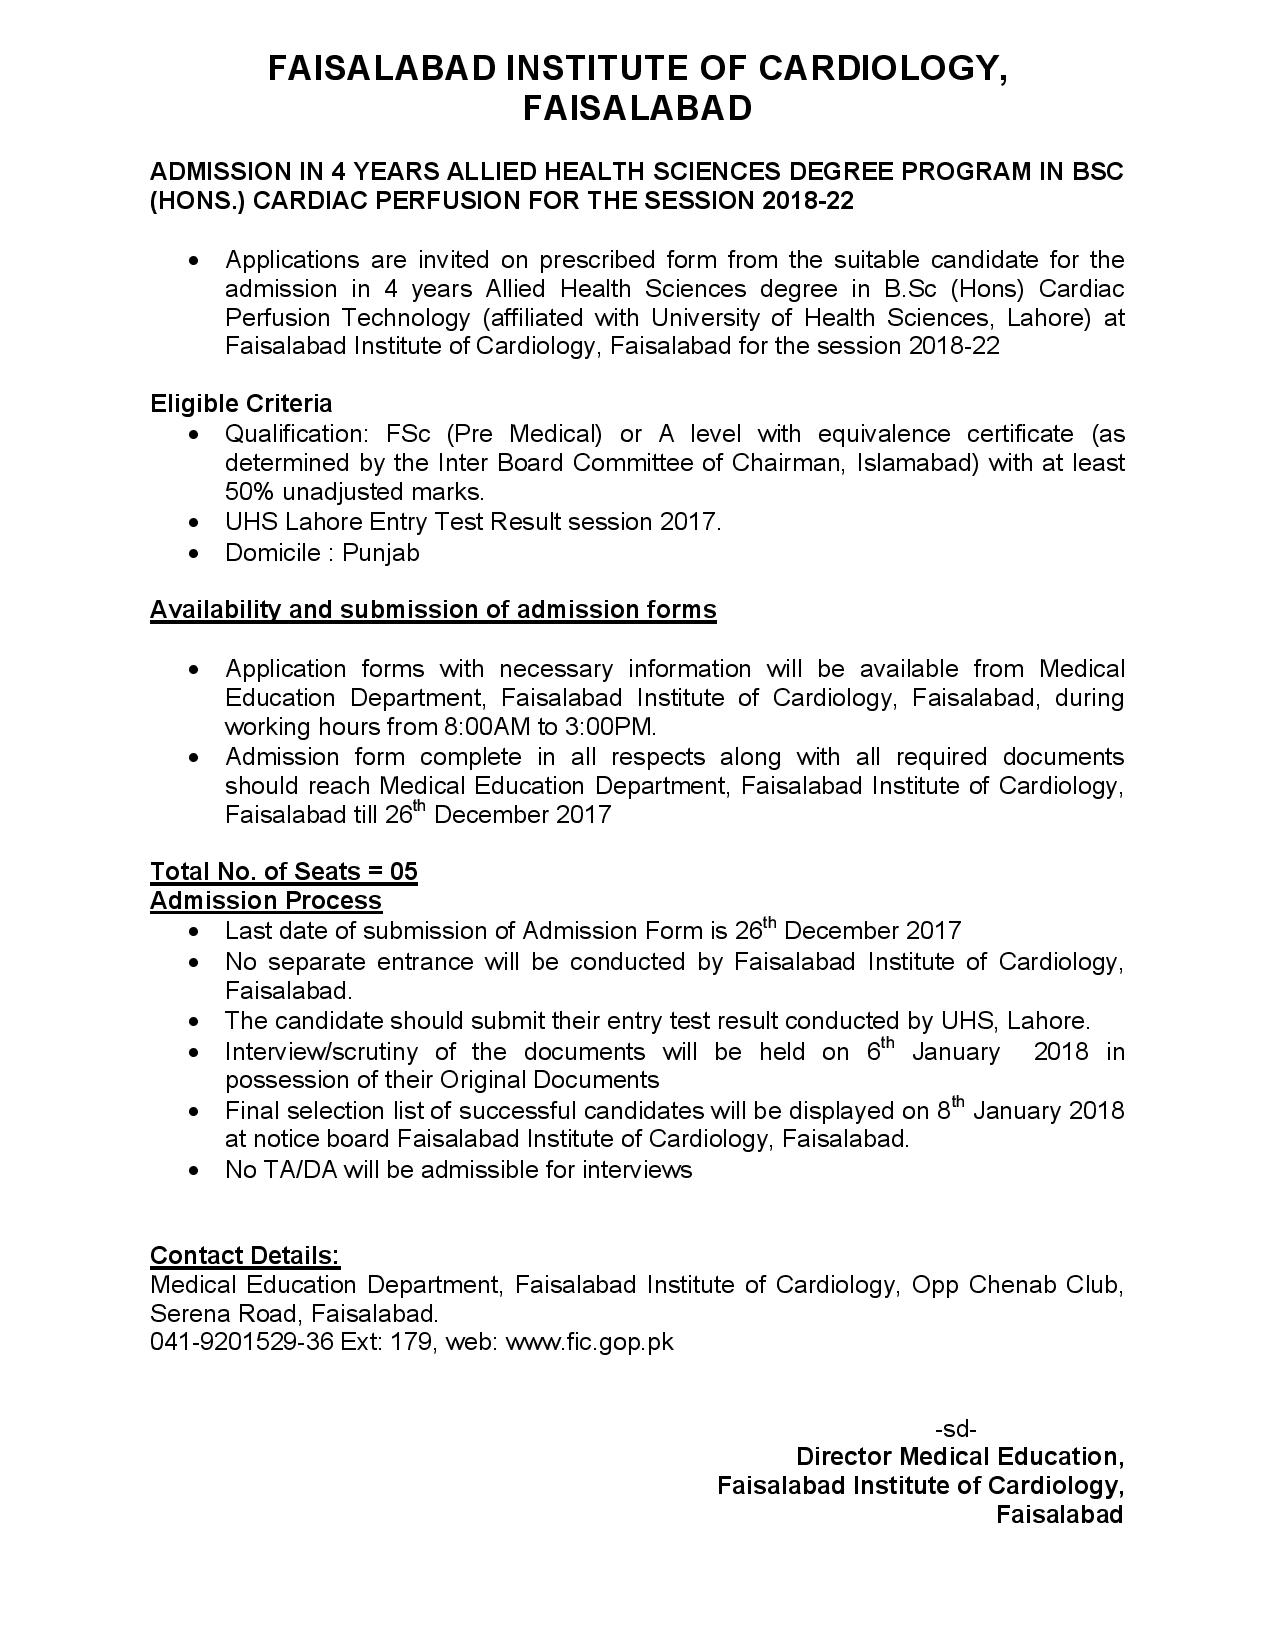 Faisalabad Institute of Cardiology BSc (Hons) Cardiac Perfusion Admissions 2018-22